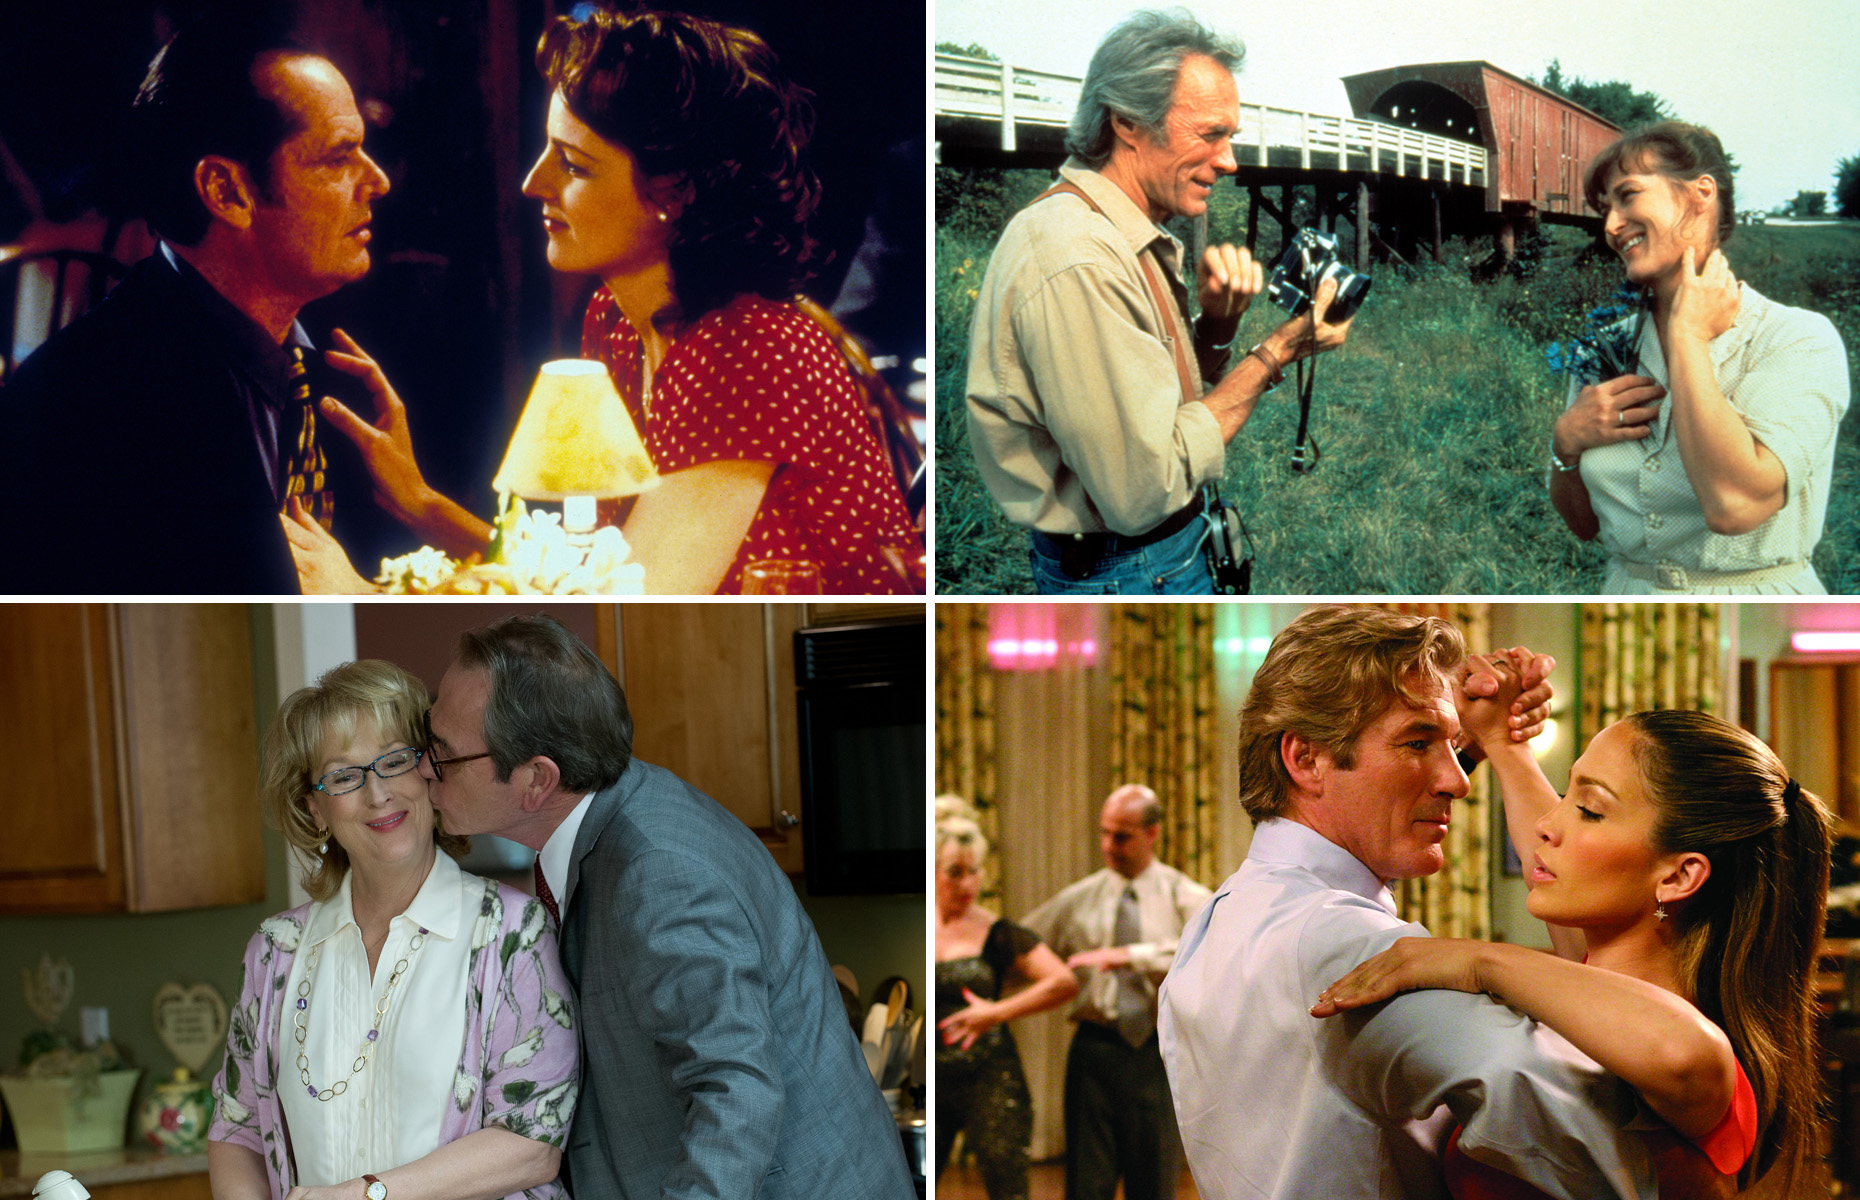 Romance movies for grownups - Http www msn com fr fr ocid mailsignout ...